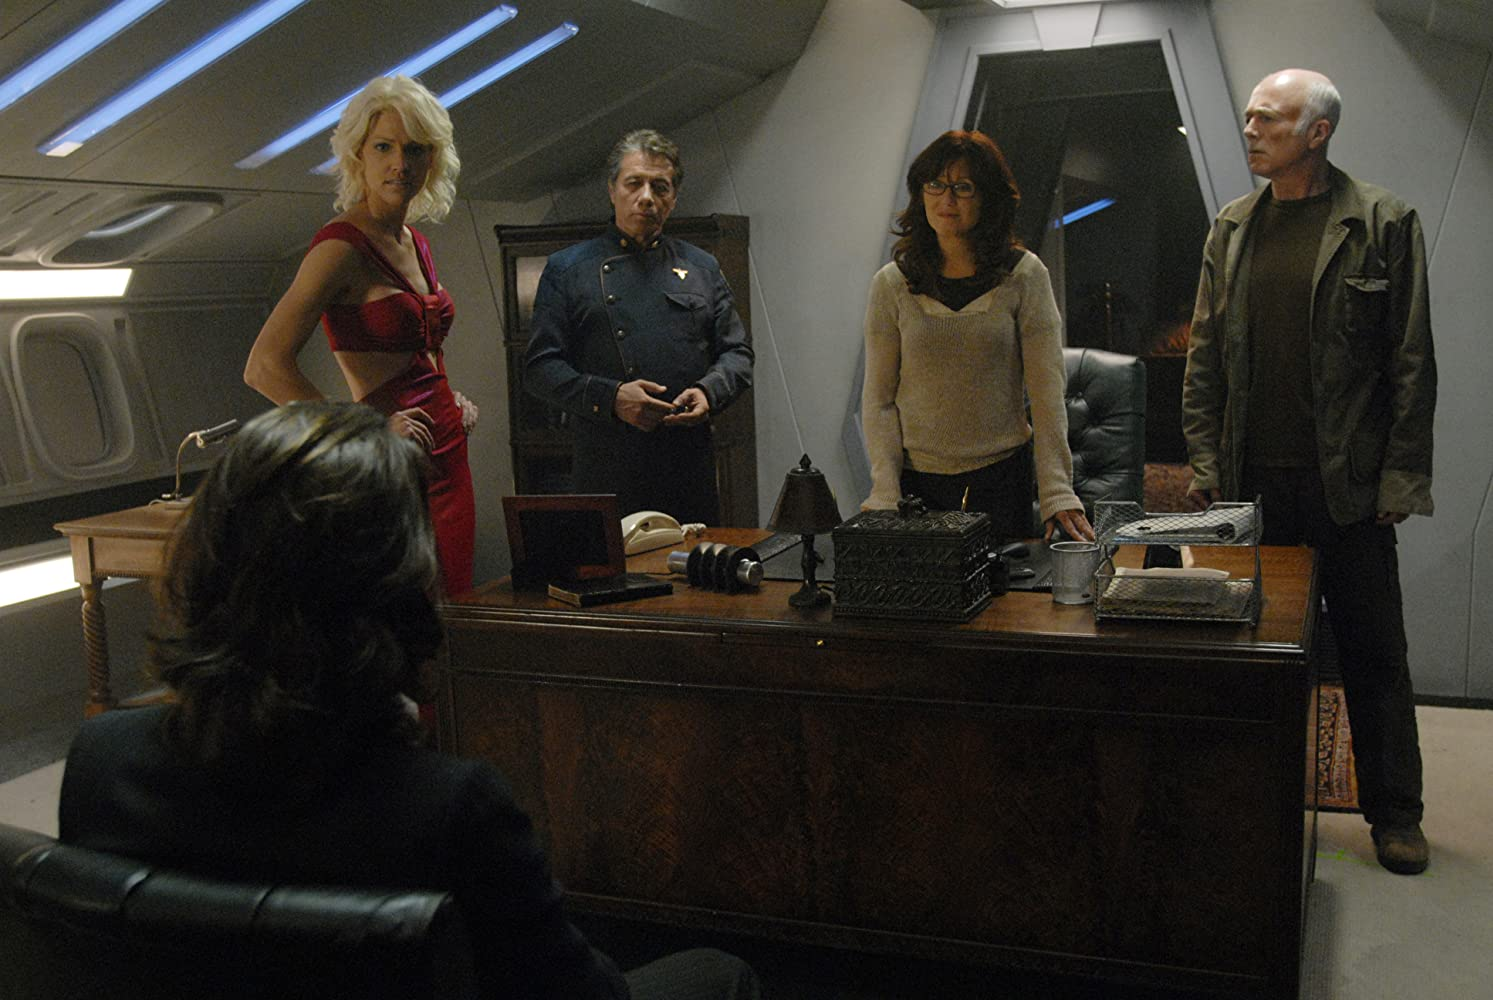 Mary McDonnell, Edward James Olmos, James Callis, Michael Hogan, and Tricia Helfer in Battlestar Galactica (2004)